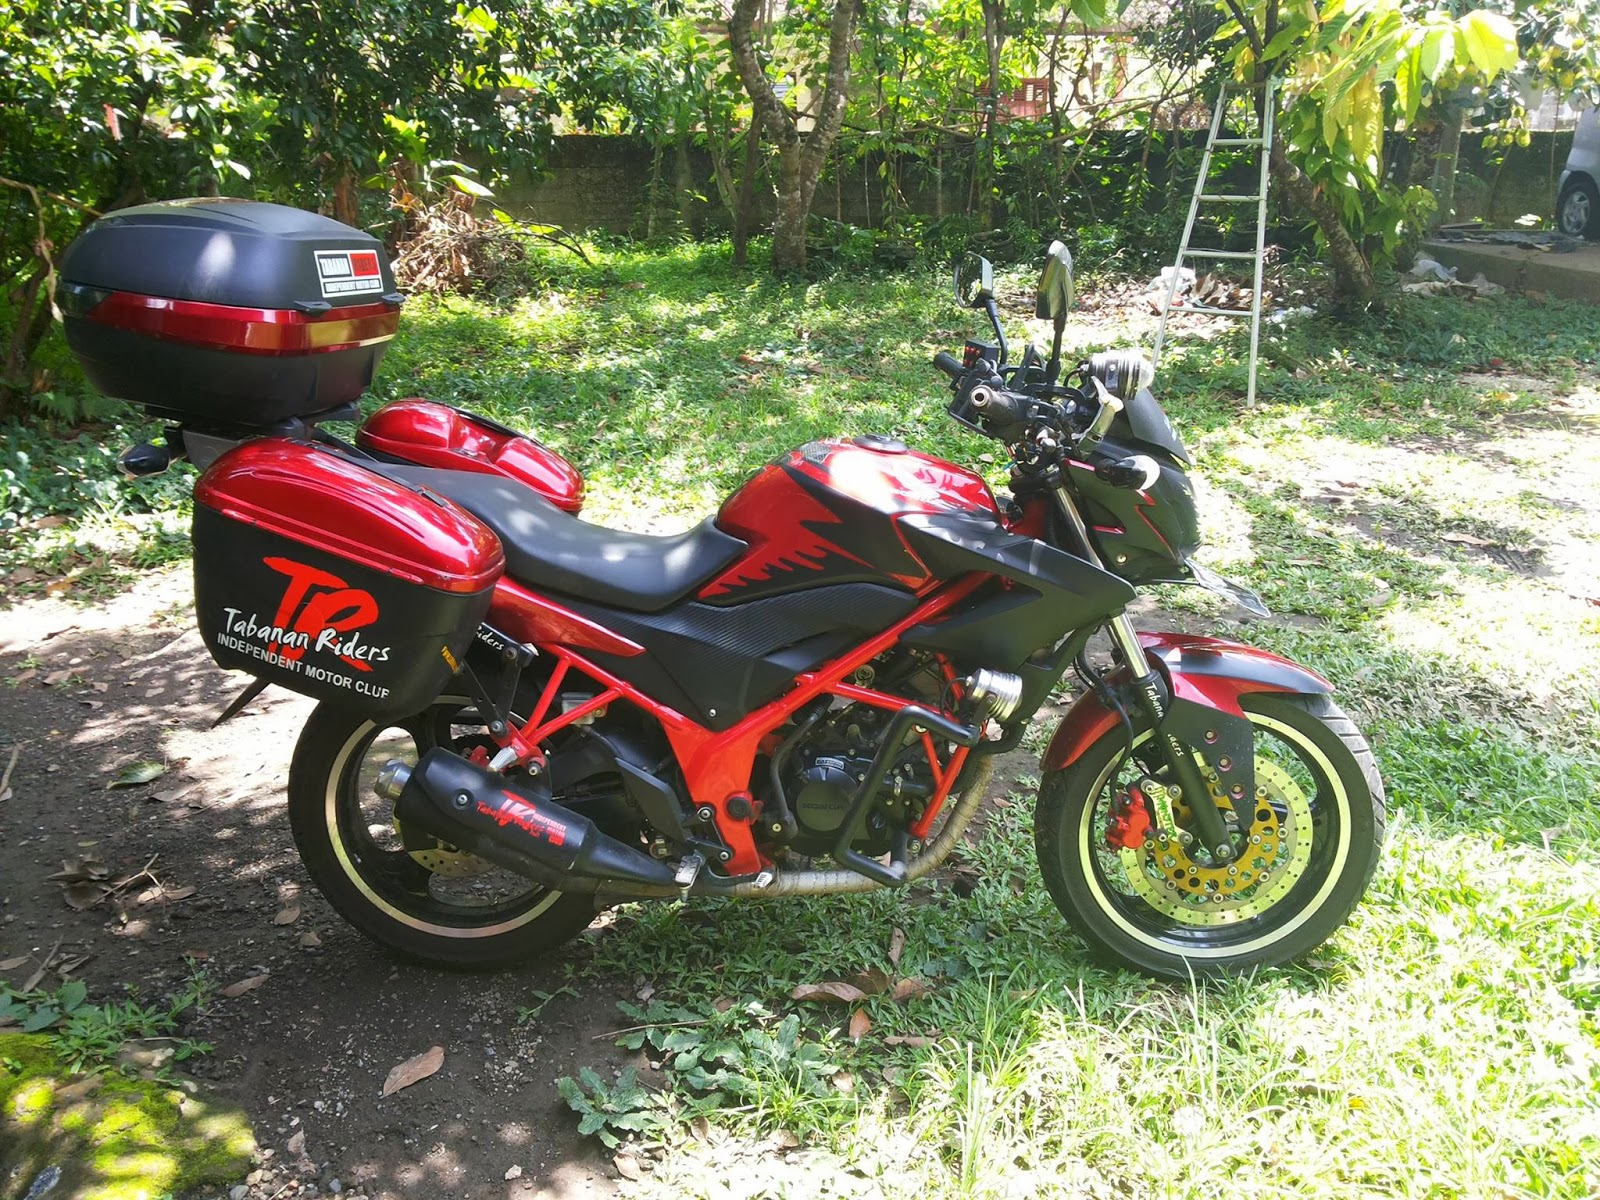 honda beat modif touring html with Koleksi Modif Warna Motor Cb 150 R on Kumpulan Modifikasi Astrea Touring also Modifikasi Motor Honda Astrea Grand Ala C70 Street Cub also Modifikasi Mio Soul Gt 125 Blue Core together with 100 Gambar Motor Mio Gt Terupdate in addition herlands Country Flag.